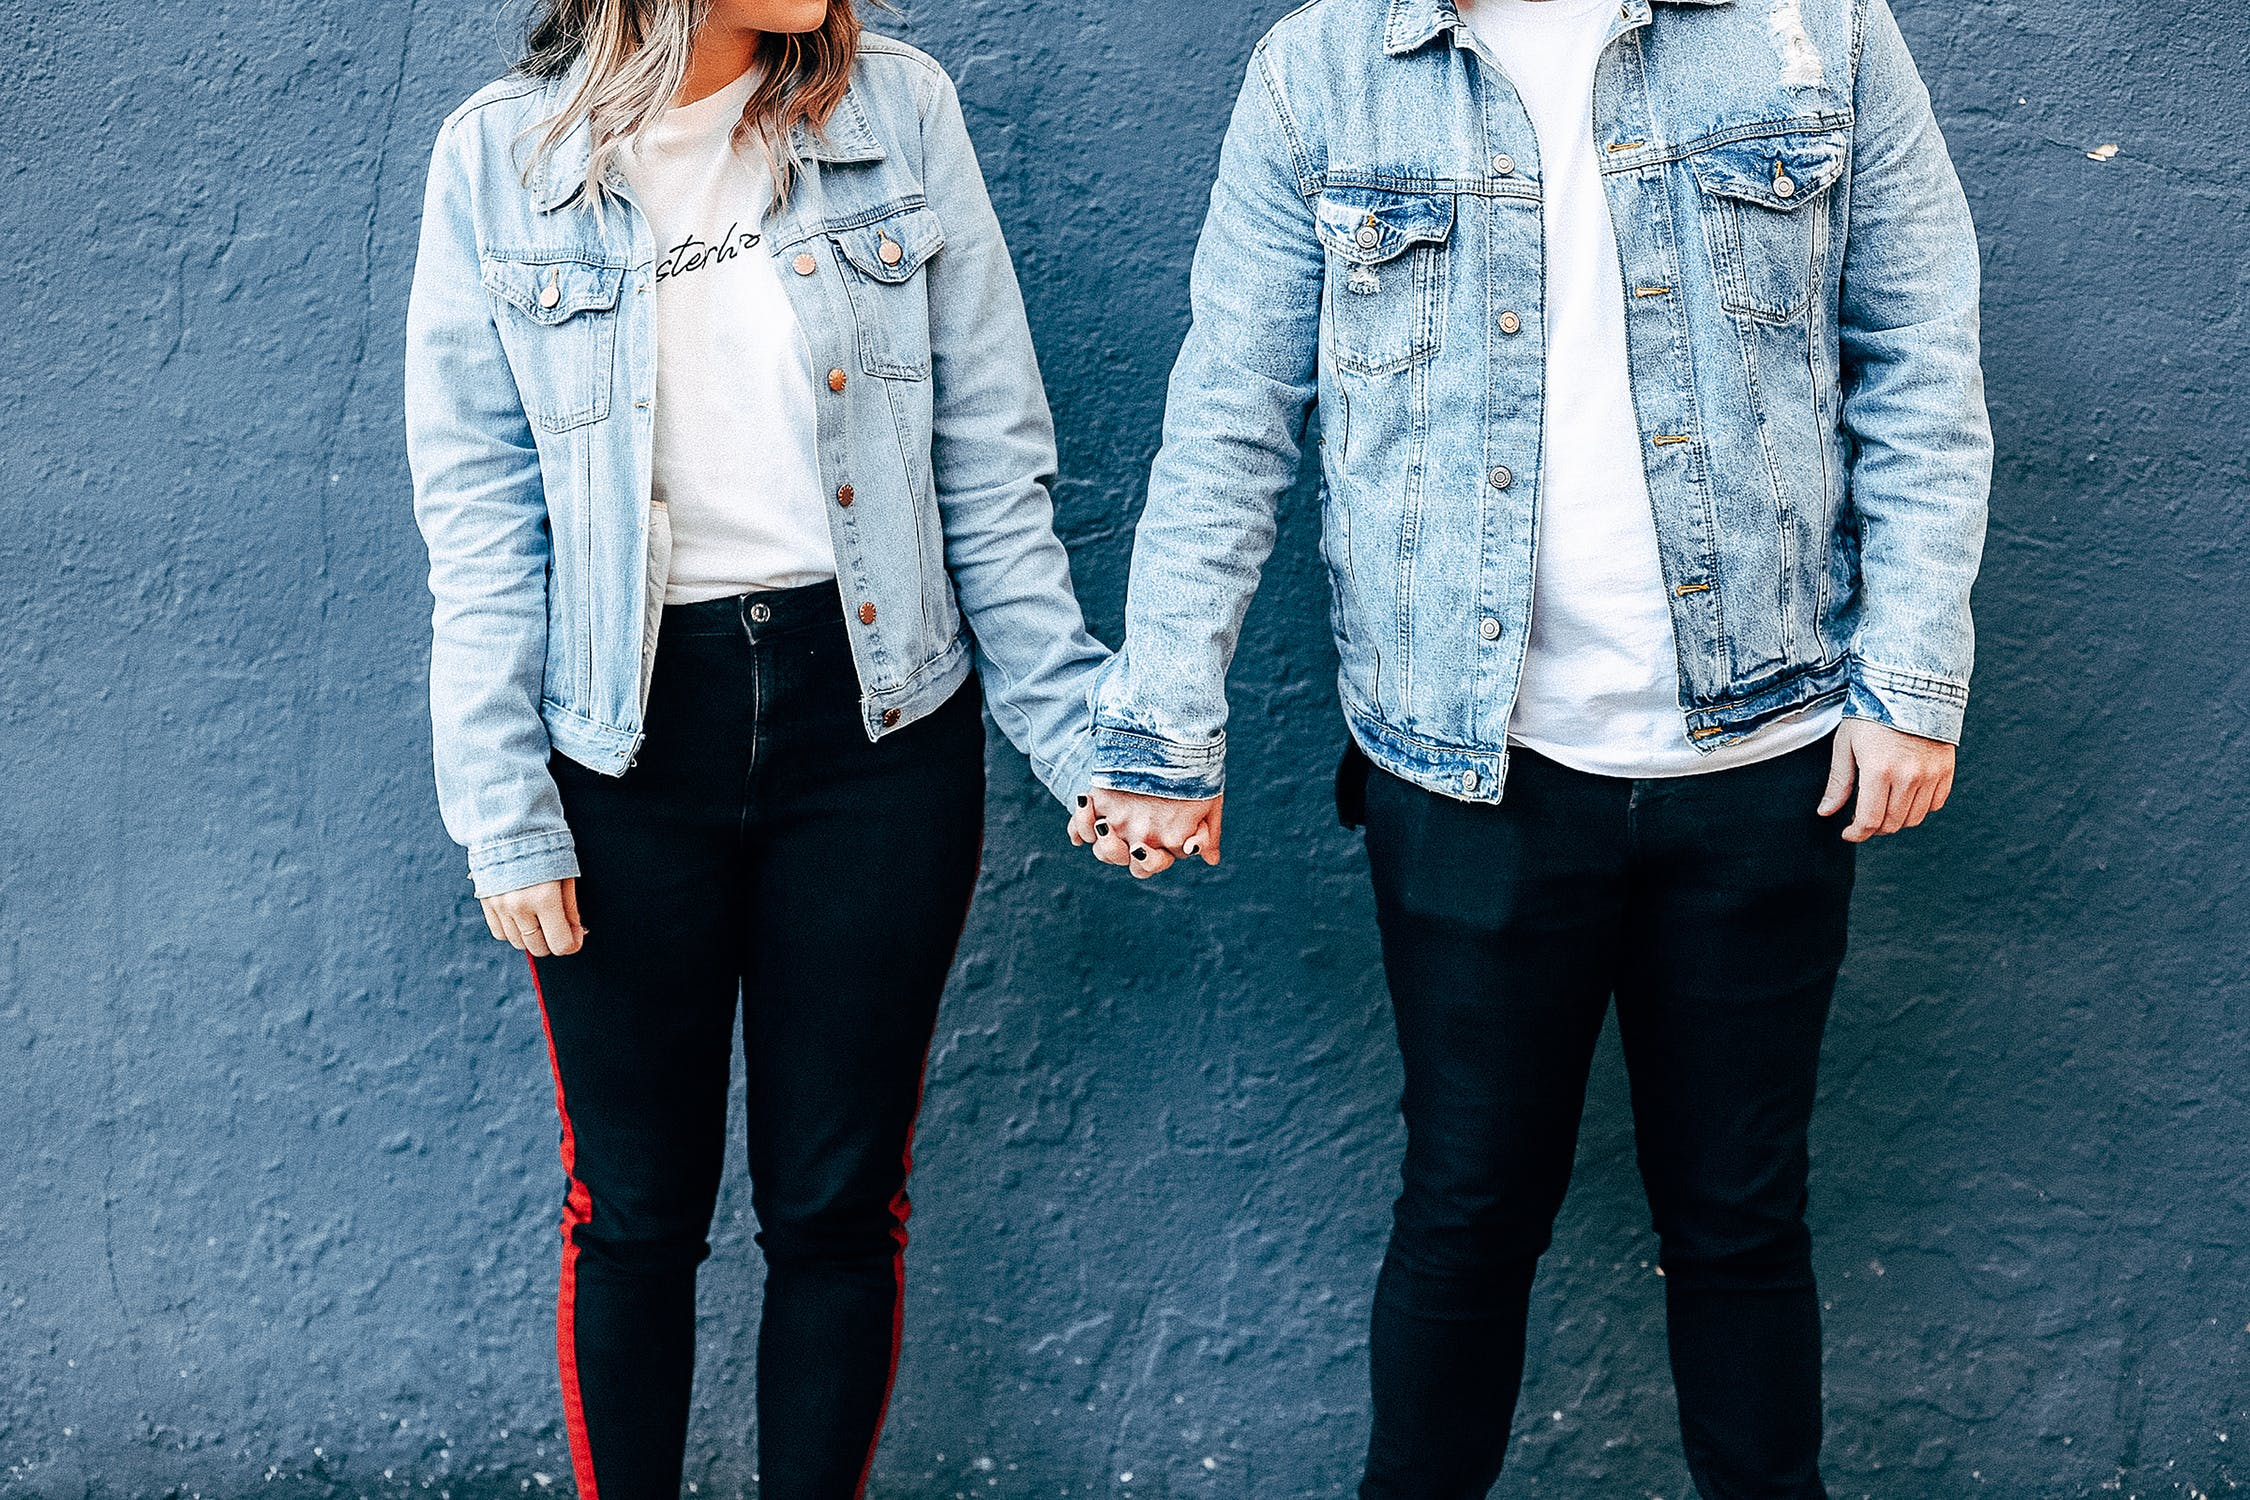 Does Height Difference Really Matter Anymore In Relationships?